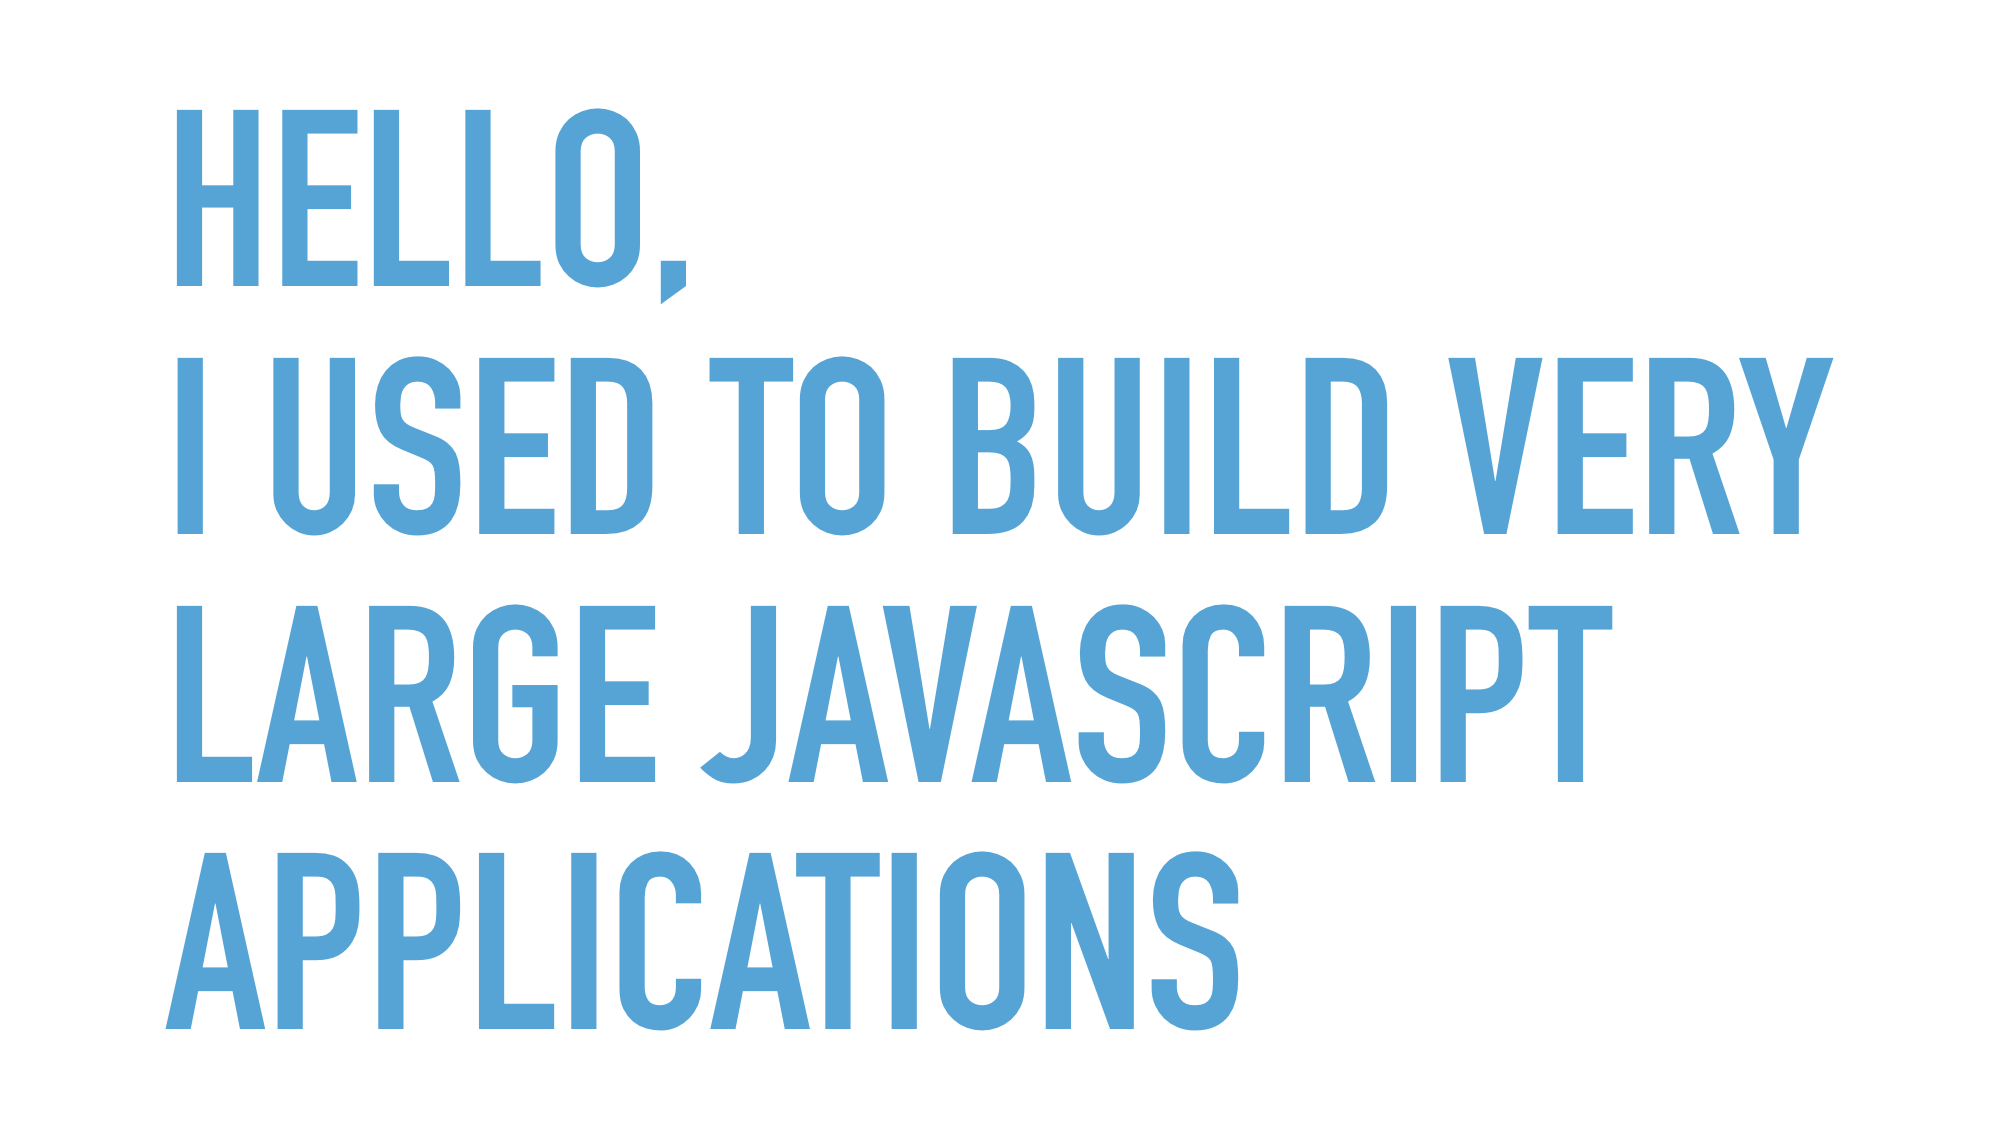 Slide text: Hello, I used to build very large JavaScript applications.